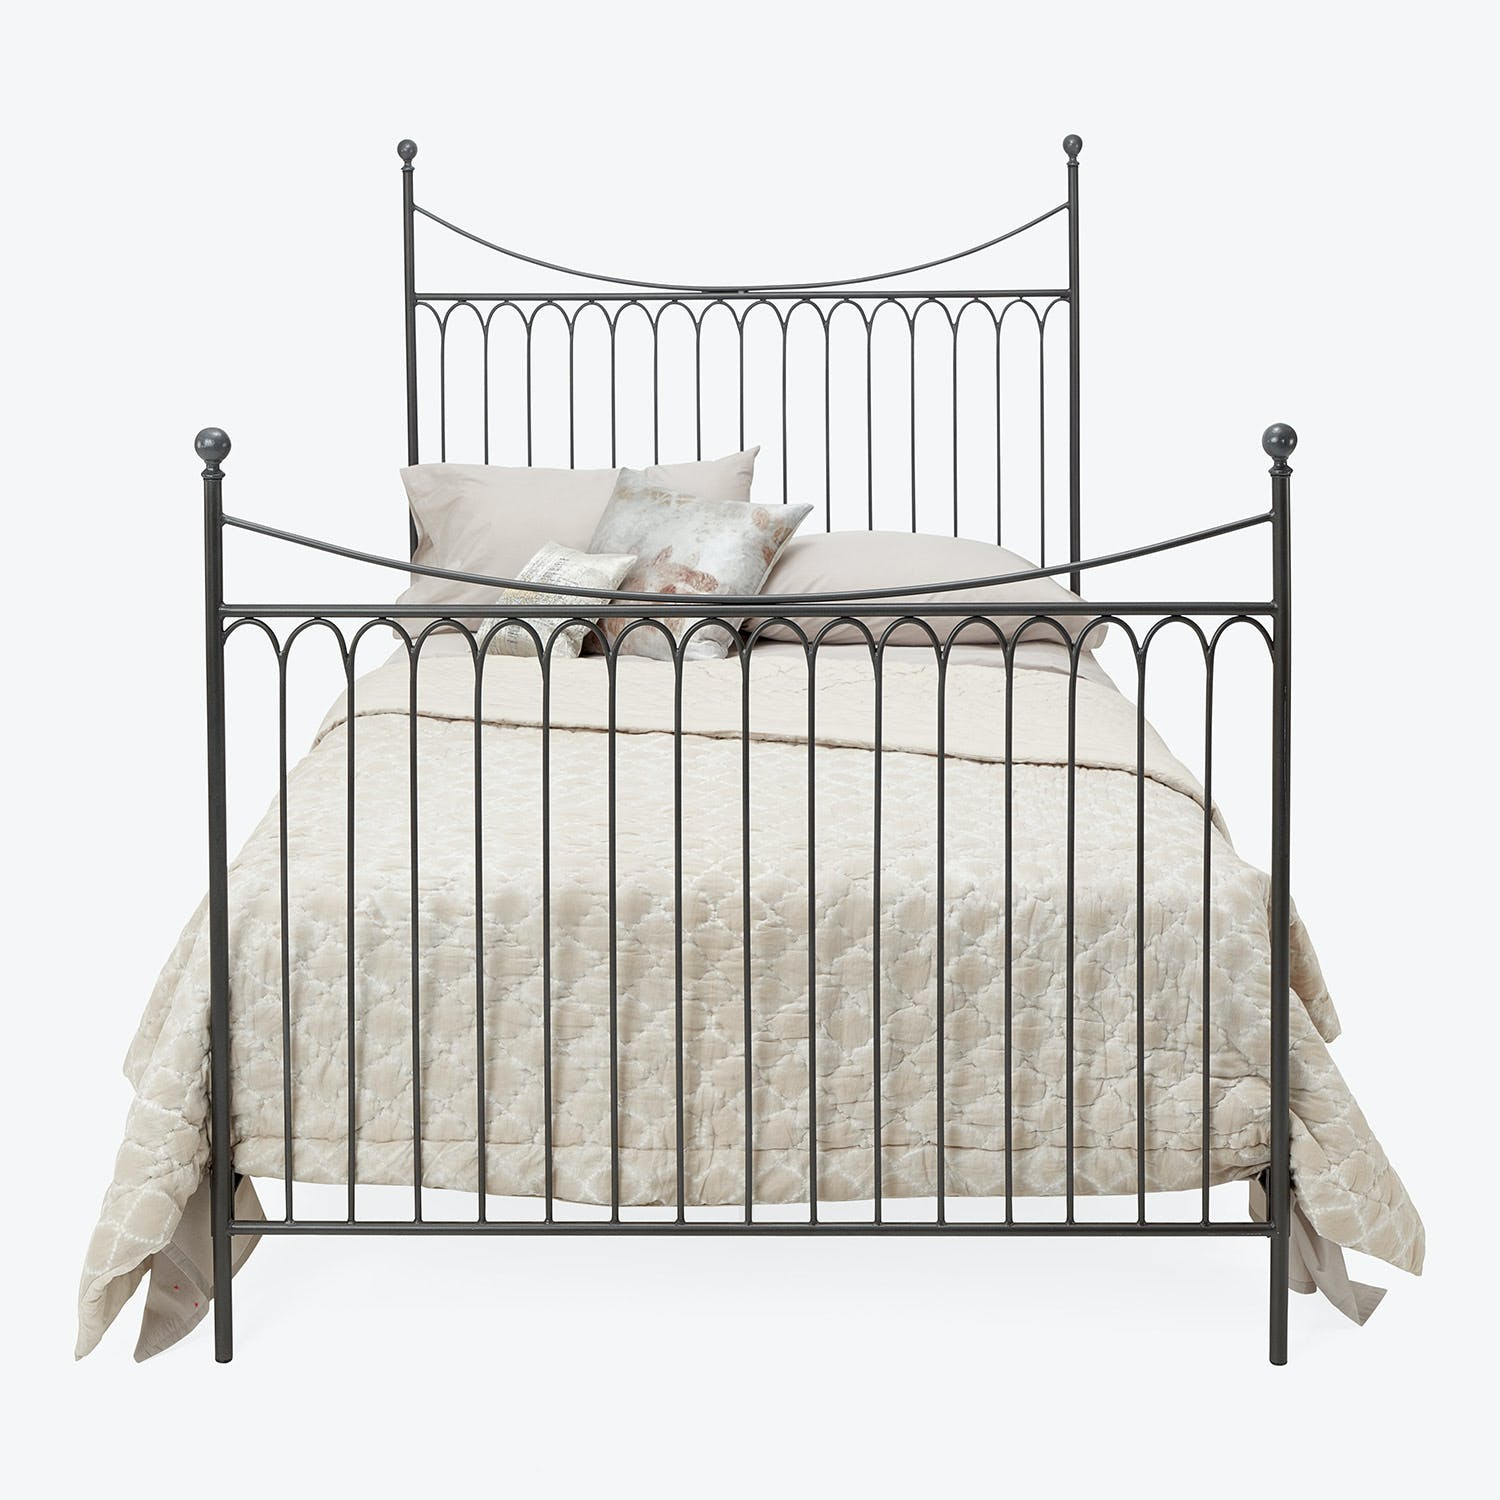 Product Image - King Bed Black